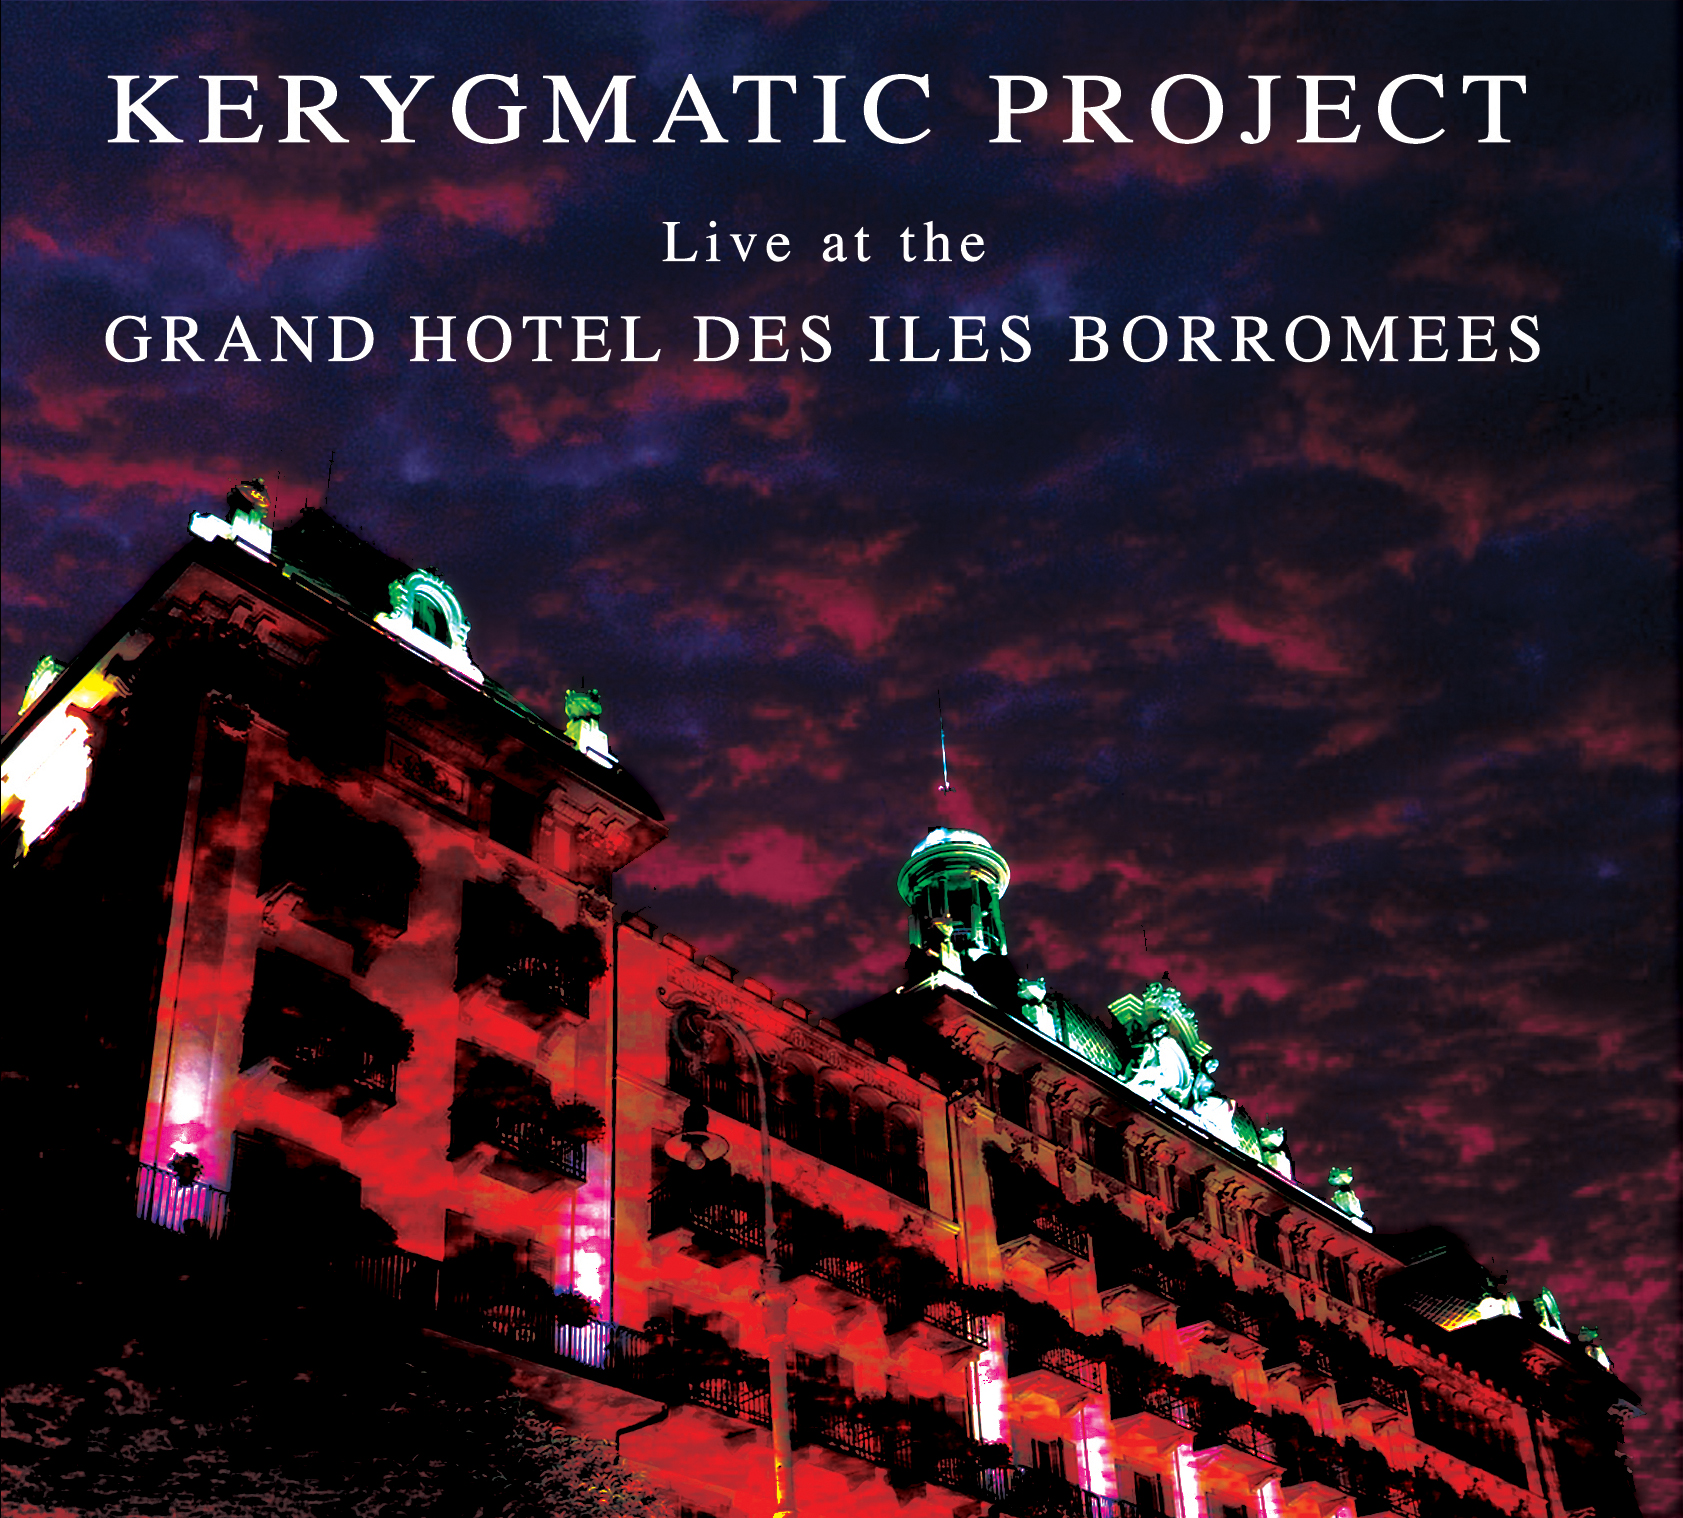 Kerygmatic Project - Live at the Grand Hotel des Iles Borromées